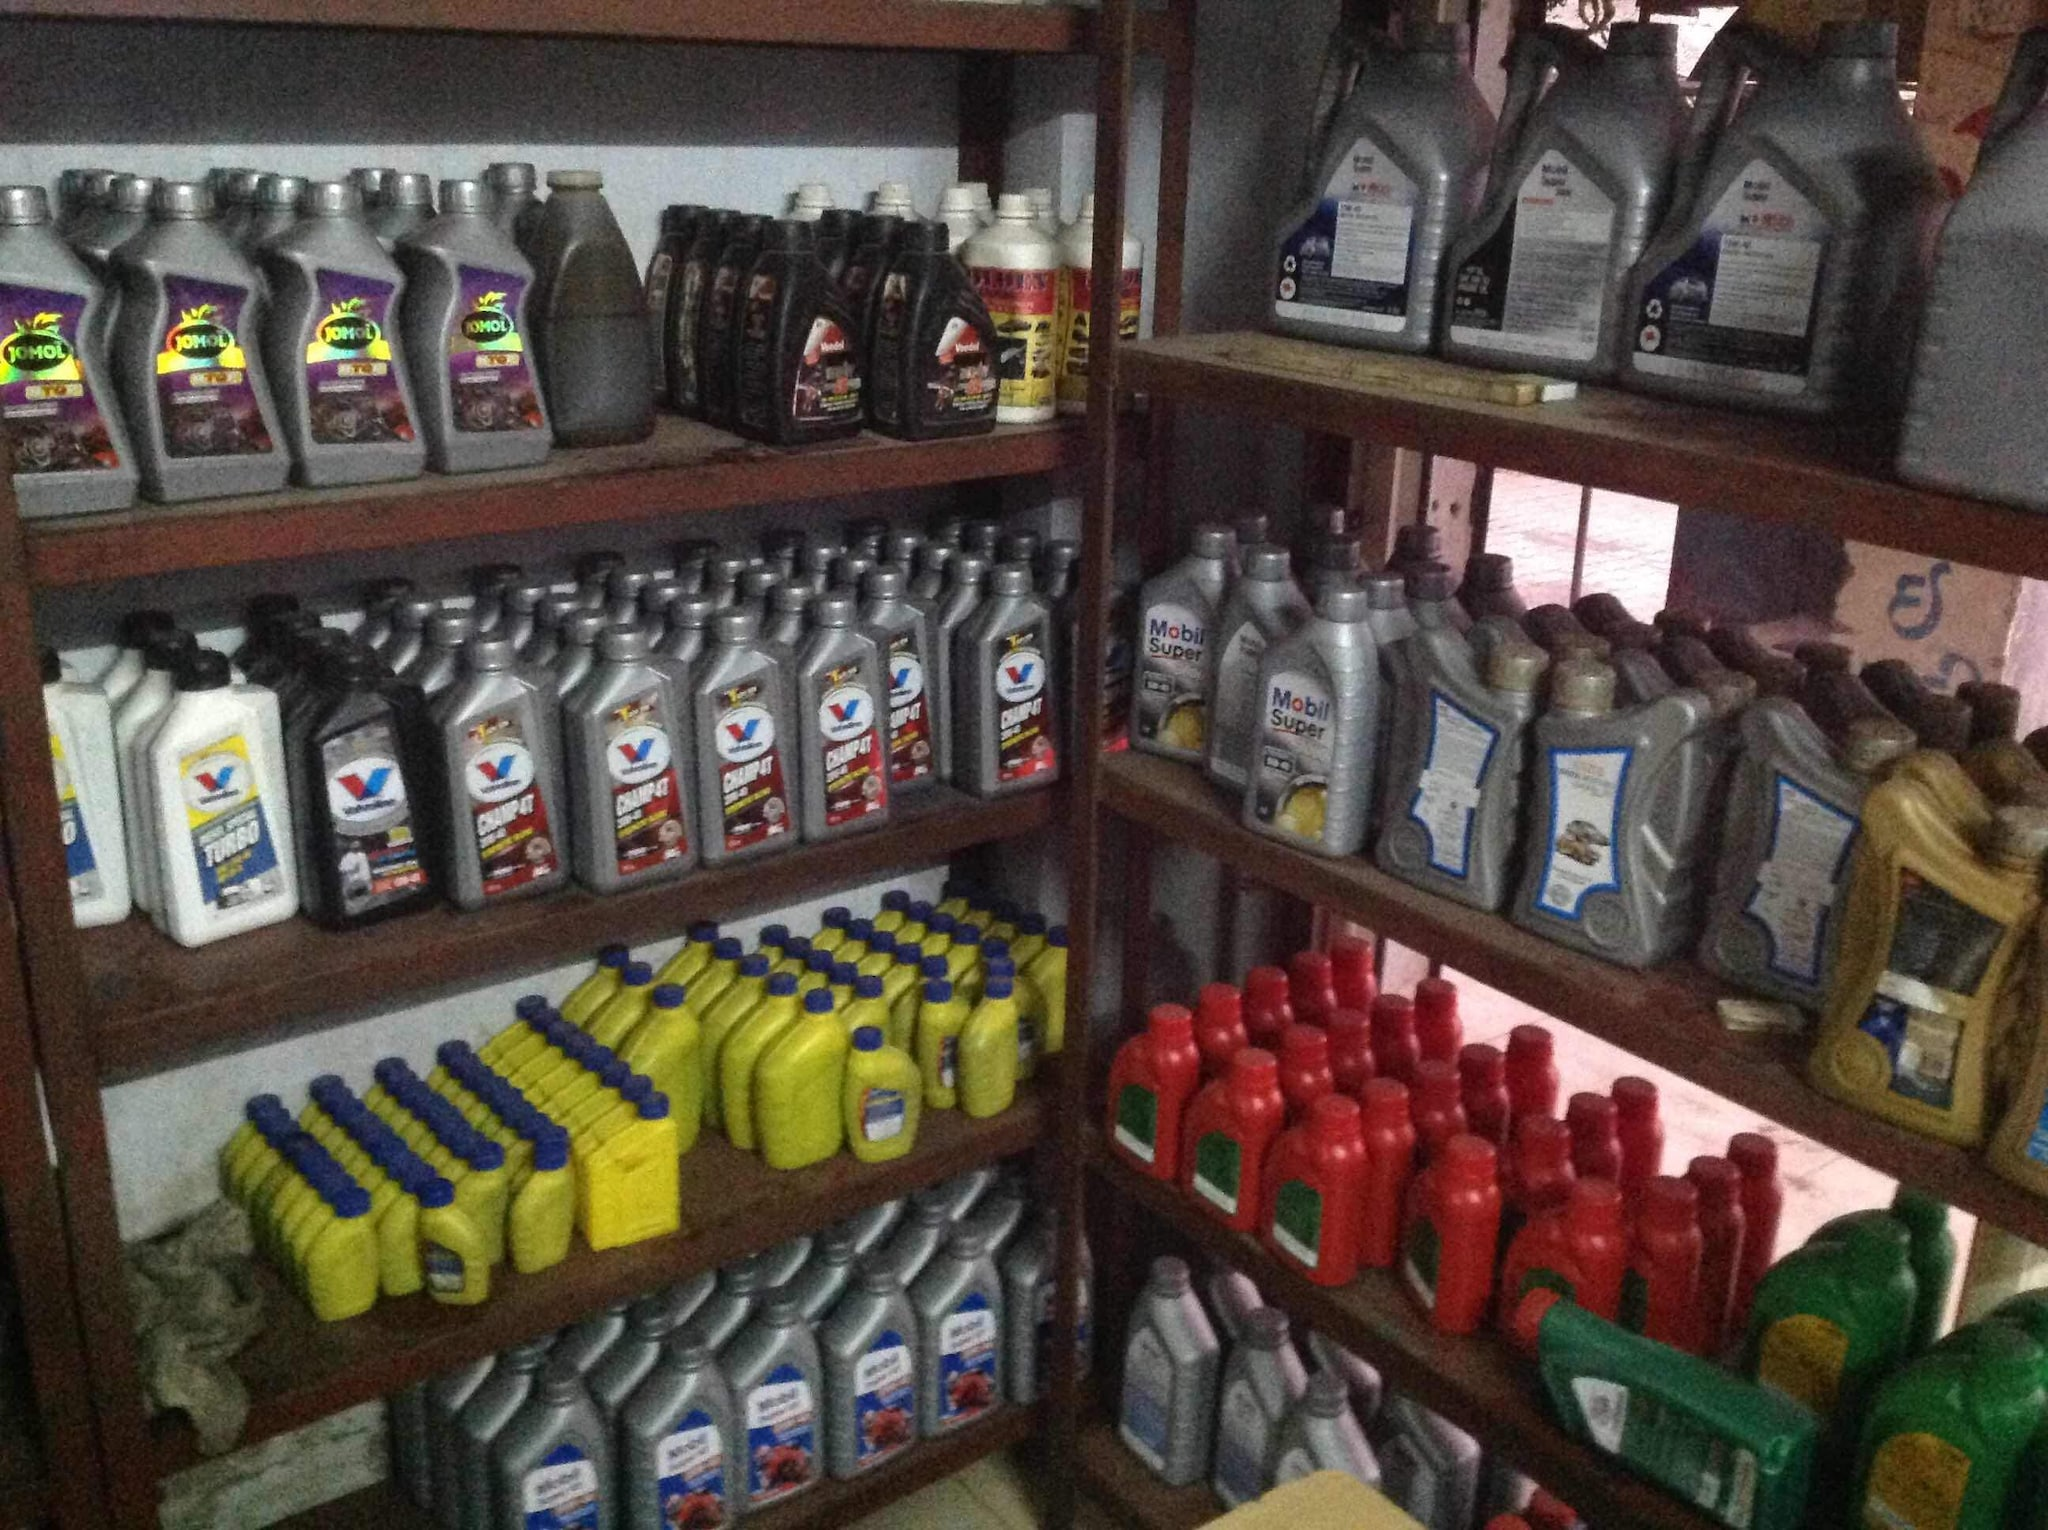 Top 30 Mobil Lubricant Oil Dealers in Ahmedabad - Best Mobil